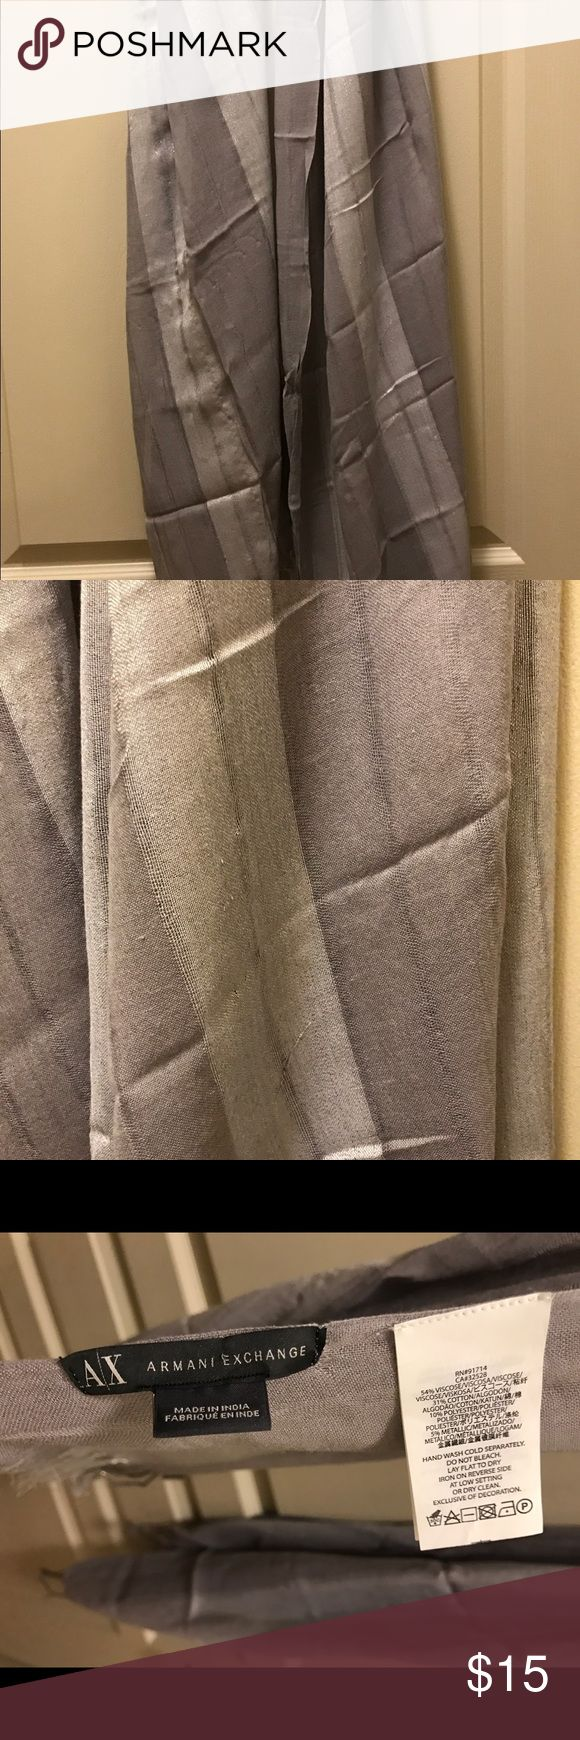 ARMANI EXCHANGE LIGHT WEIGHT GRAY & SILVER SCARF This is a really cute scarf!  Only worn a few times. Clean, smoke free and animal free home. Check out what else I am selling. Thanks for looking :) A/X Armani Exchange Accessories Scarves & Wraps